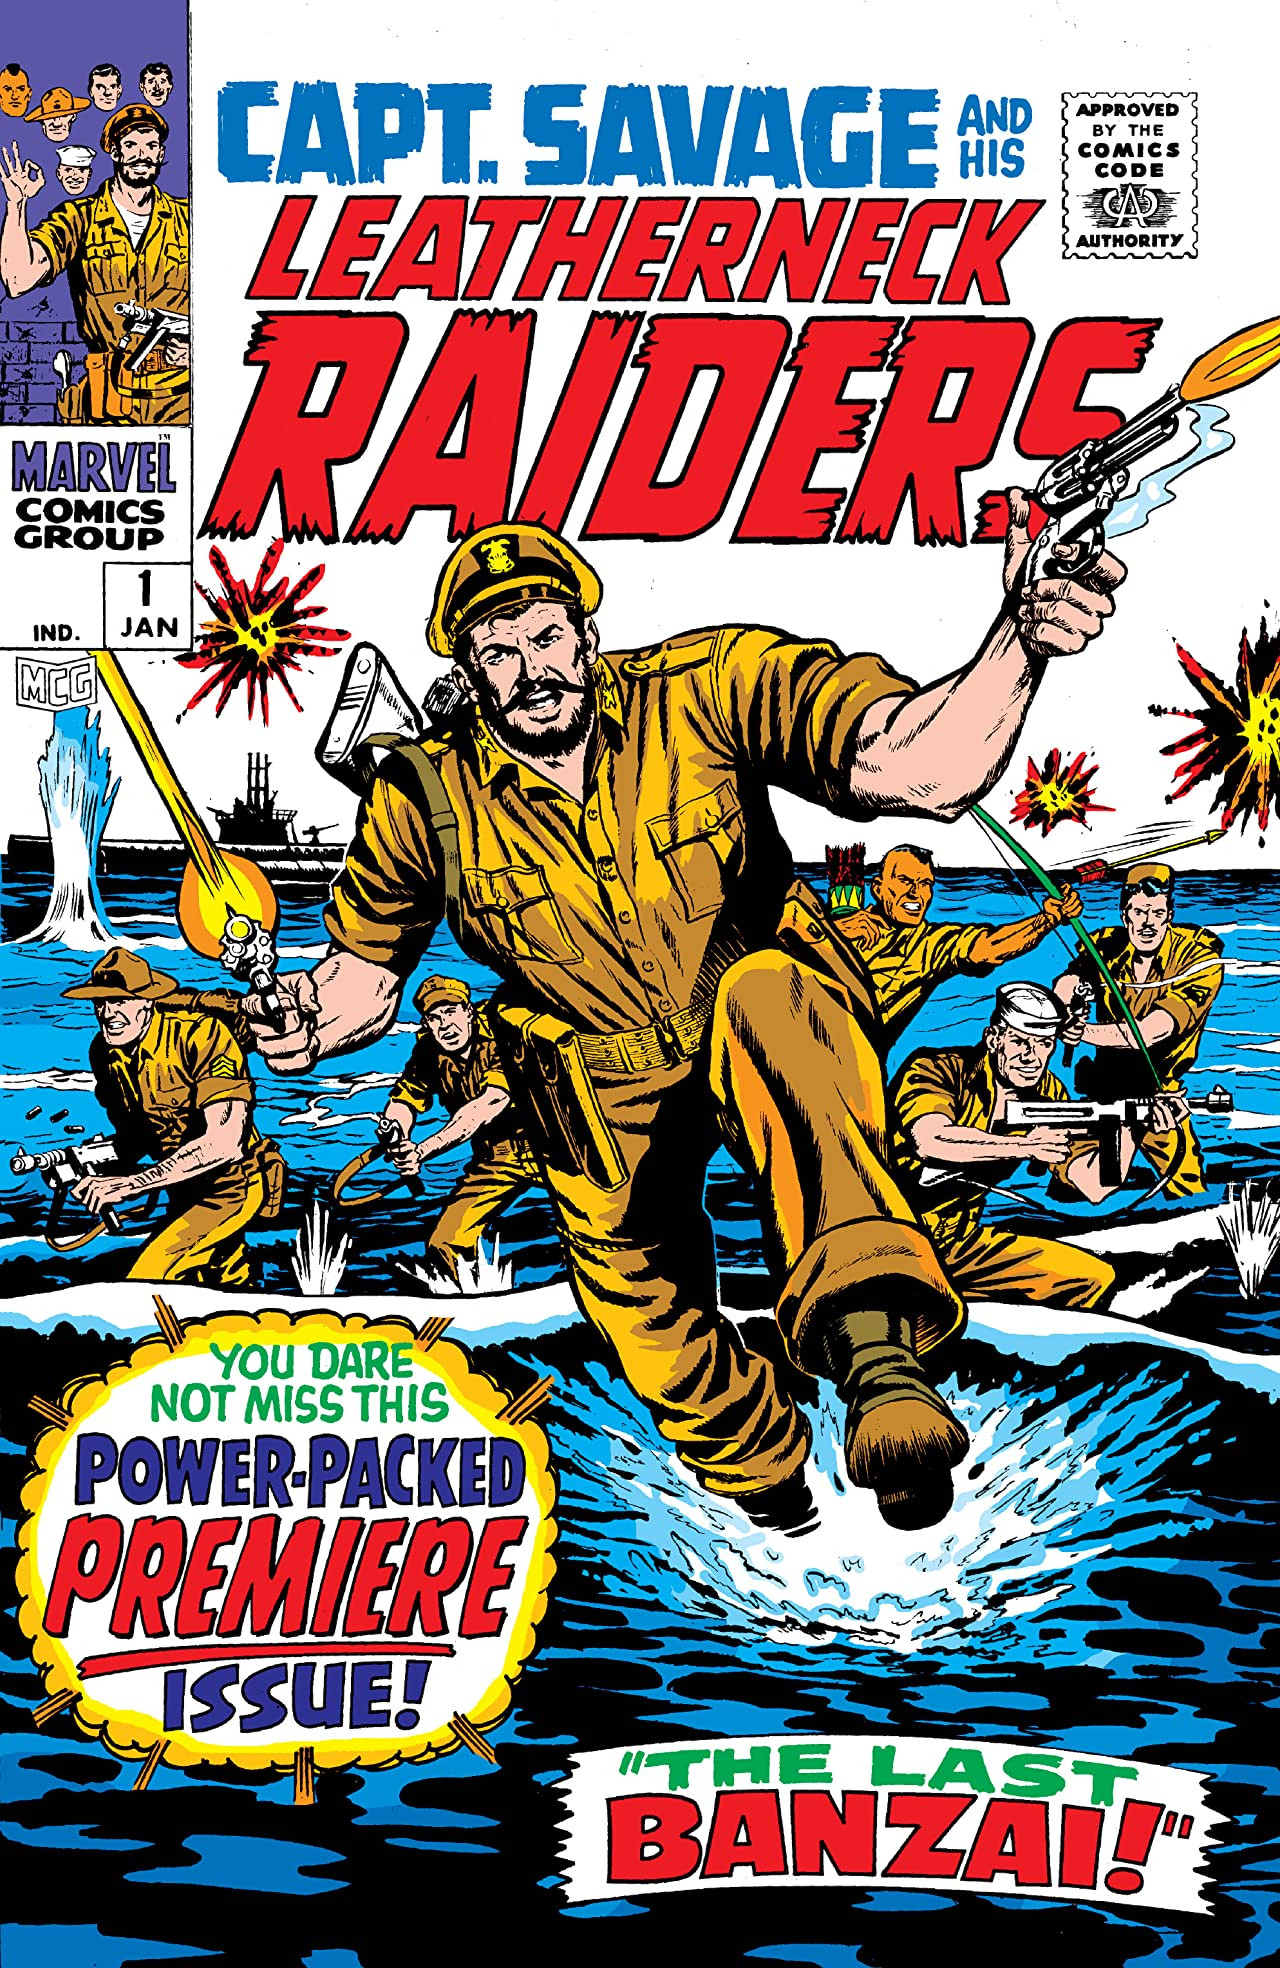 Capt. Savage and his Leatherneck Raiders Vol 1 1